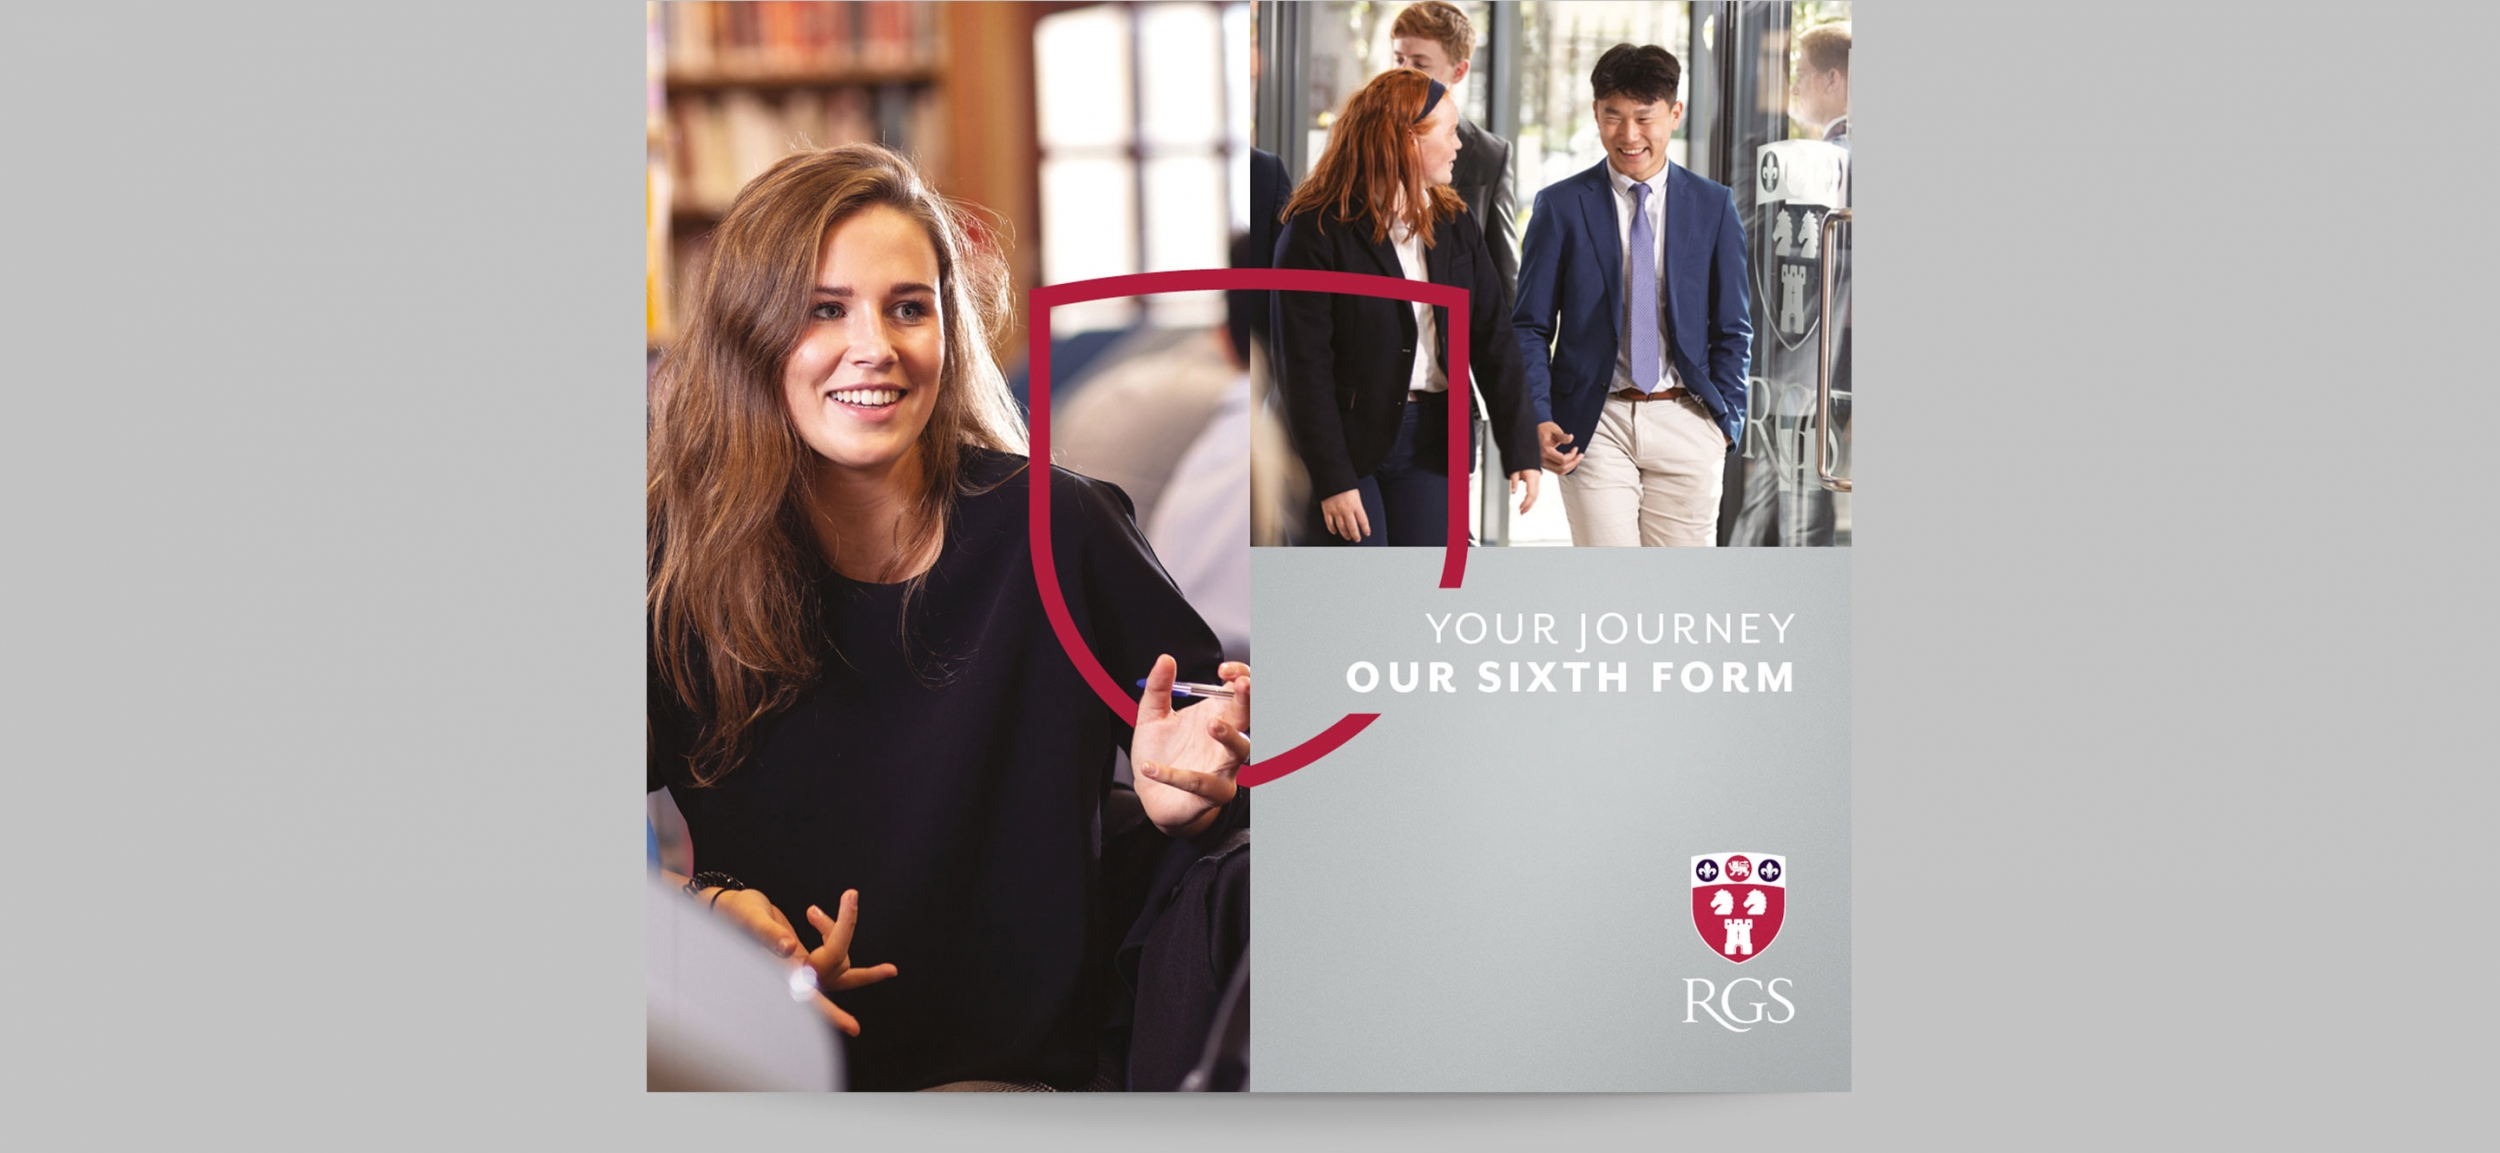 Independent school branding and sixth form brochure for Royal Grammar School